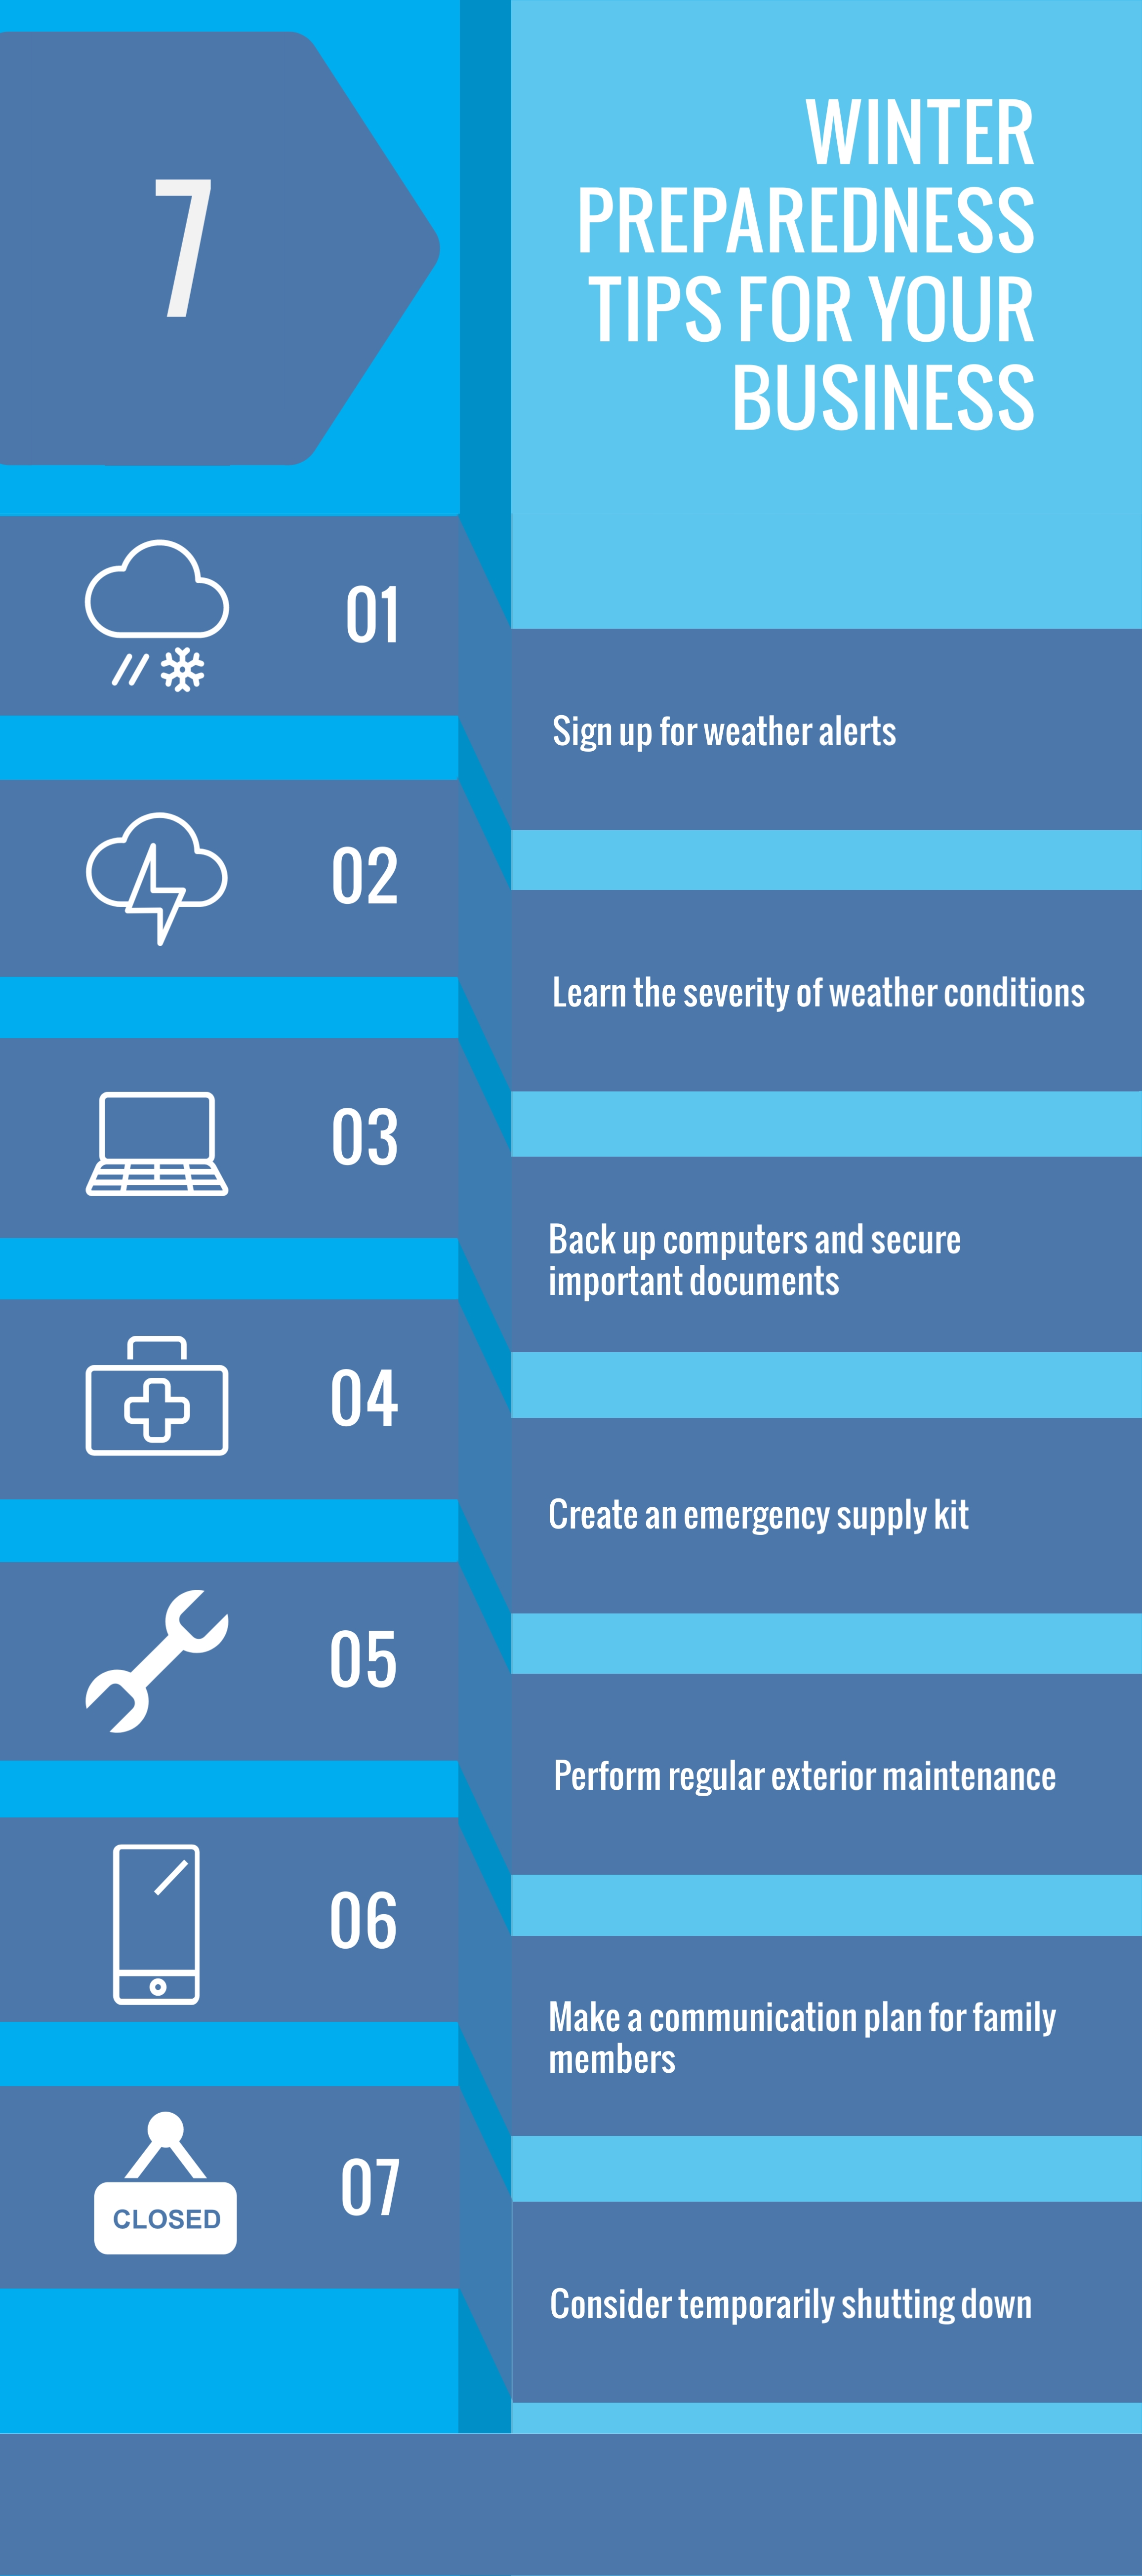 7 Winter Preparedness Tips for Your Business, HSI Services, Waller, TX